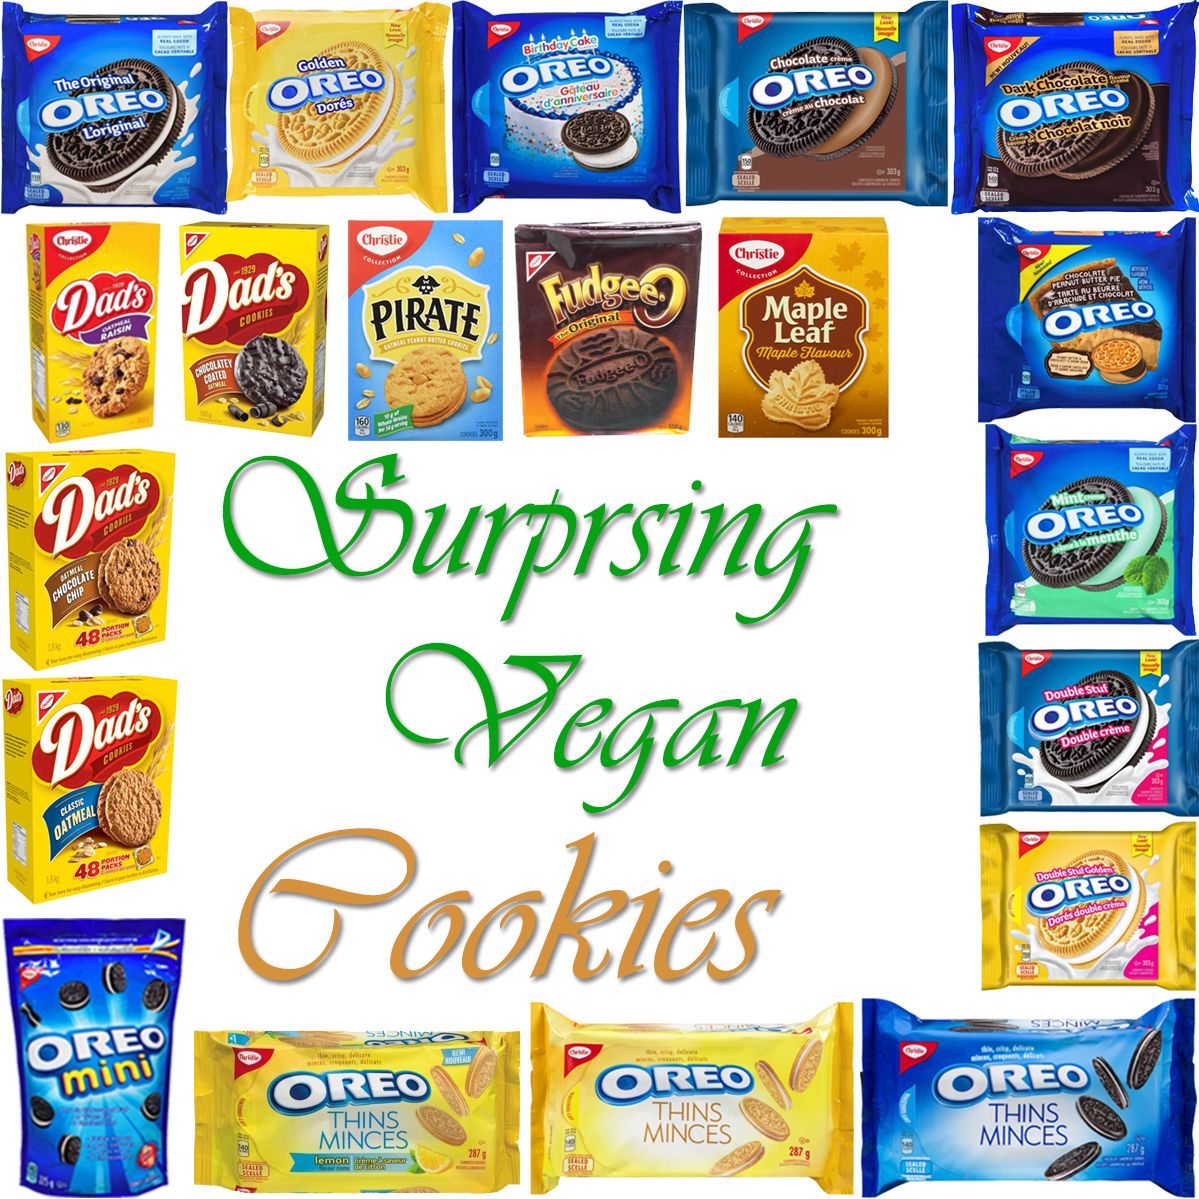 AterImber.com - The Veg Life - Vegan Tips - Surprising Vegan Series - Surprising Vegan Cookies - vegan food, vegan snacks, cookies, Oreos, Dad's cookies, Pirate cookies, Fudgee-Os, Maple Cookies, Mr. Christie Cookies, food blogger